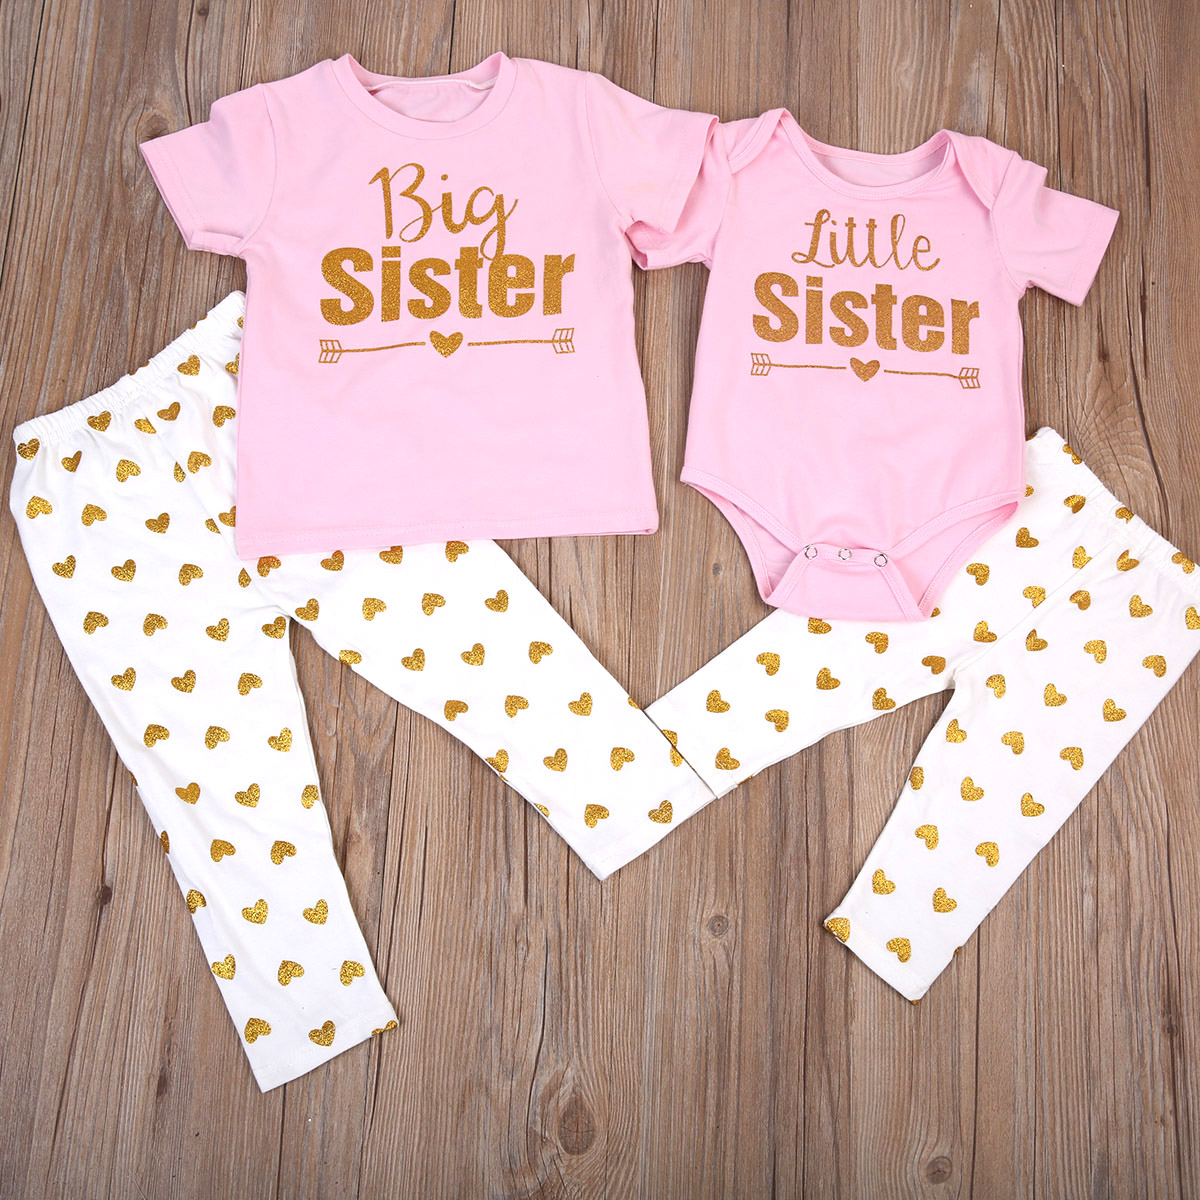 Big Litter Sister Family Matching Outfit Clothes Newborn Baby Girl Short Sleeve Romper T-shirt Top +Love Print Pants Clothes Set